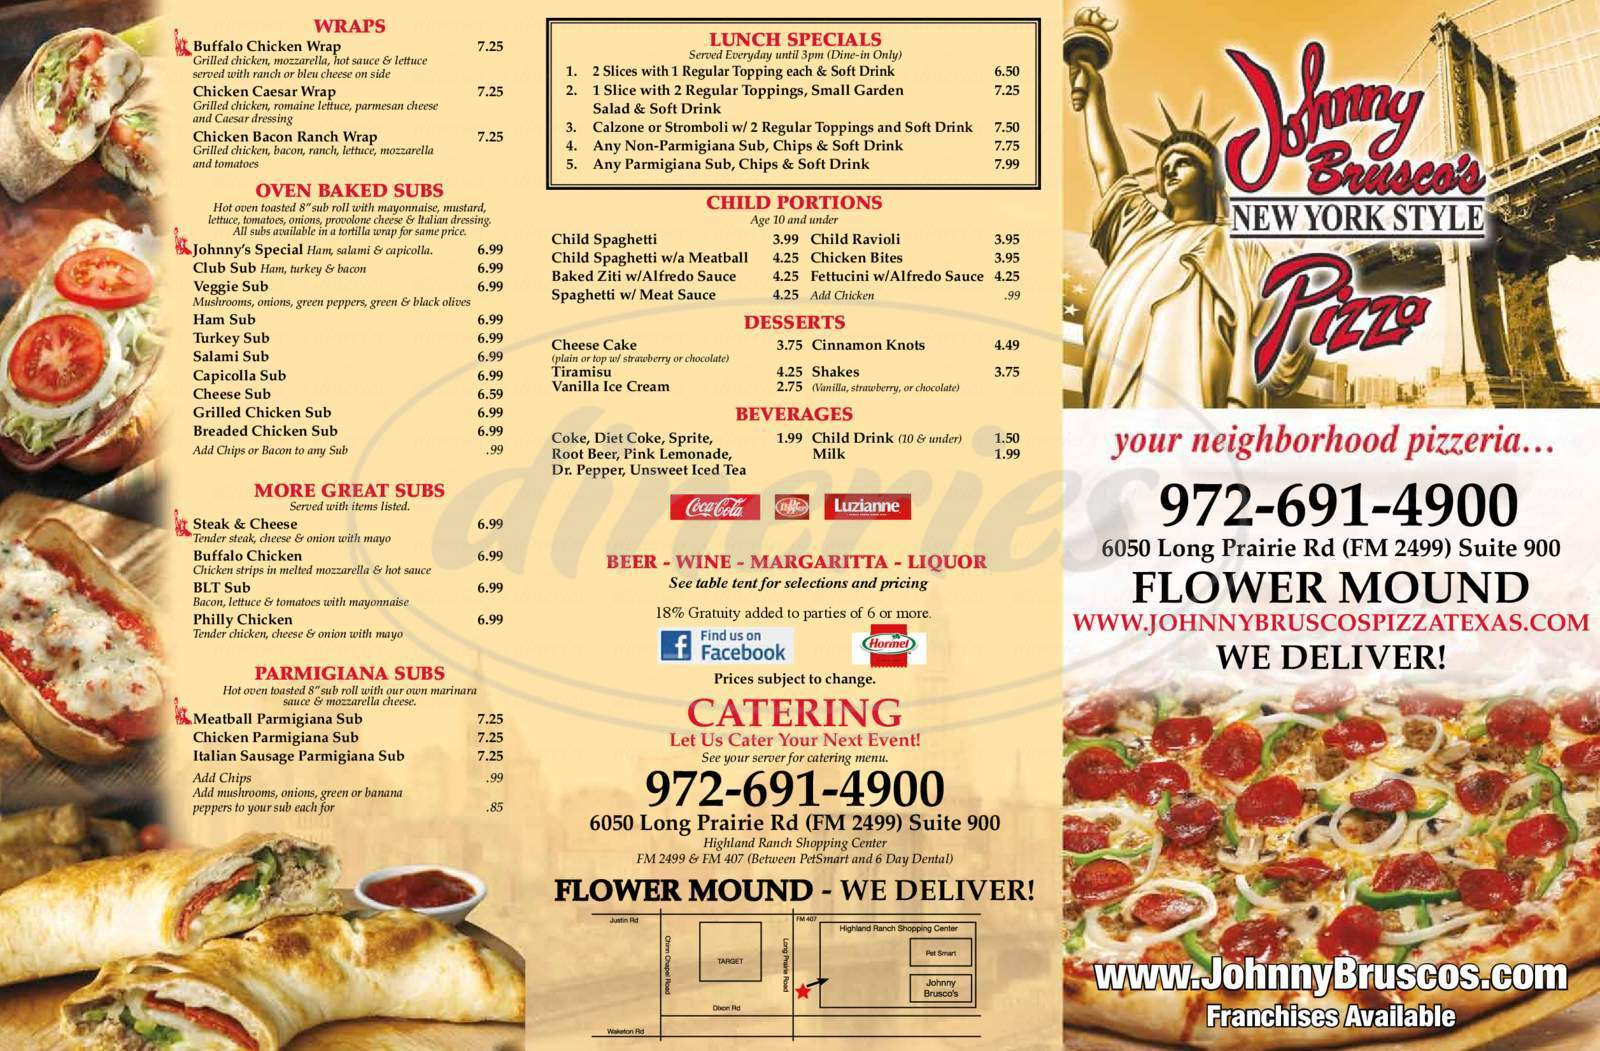 menu for Johnny Brusco's New York Style Pizza